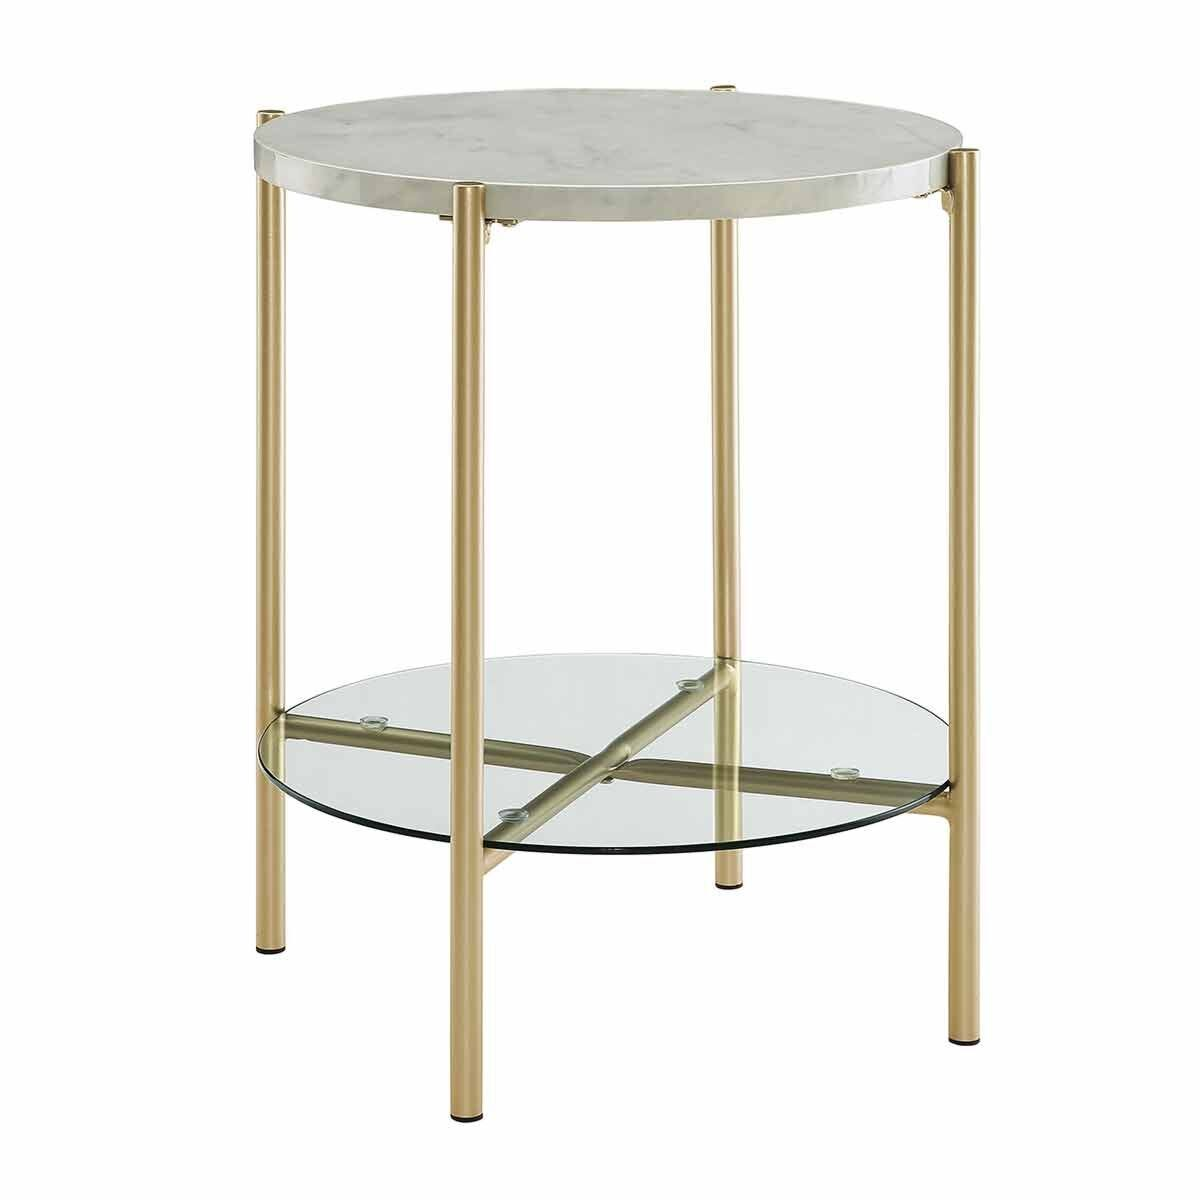 Lexington Mixed Material Round Side Table